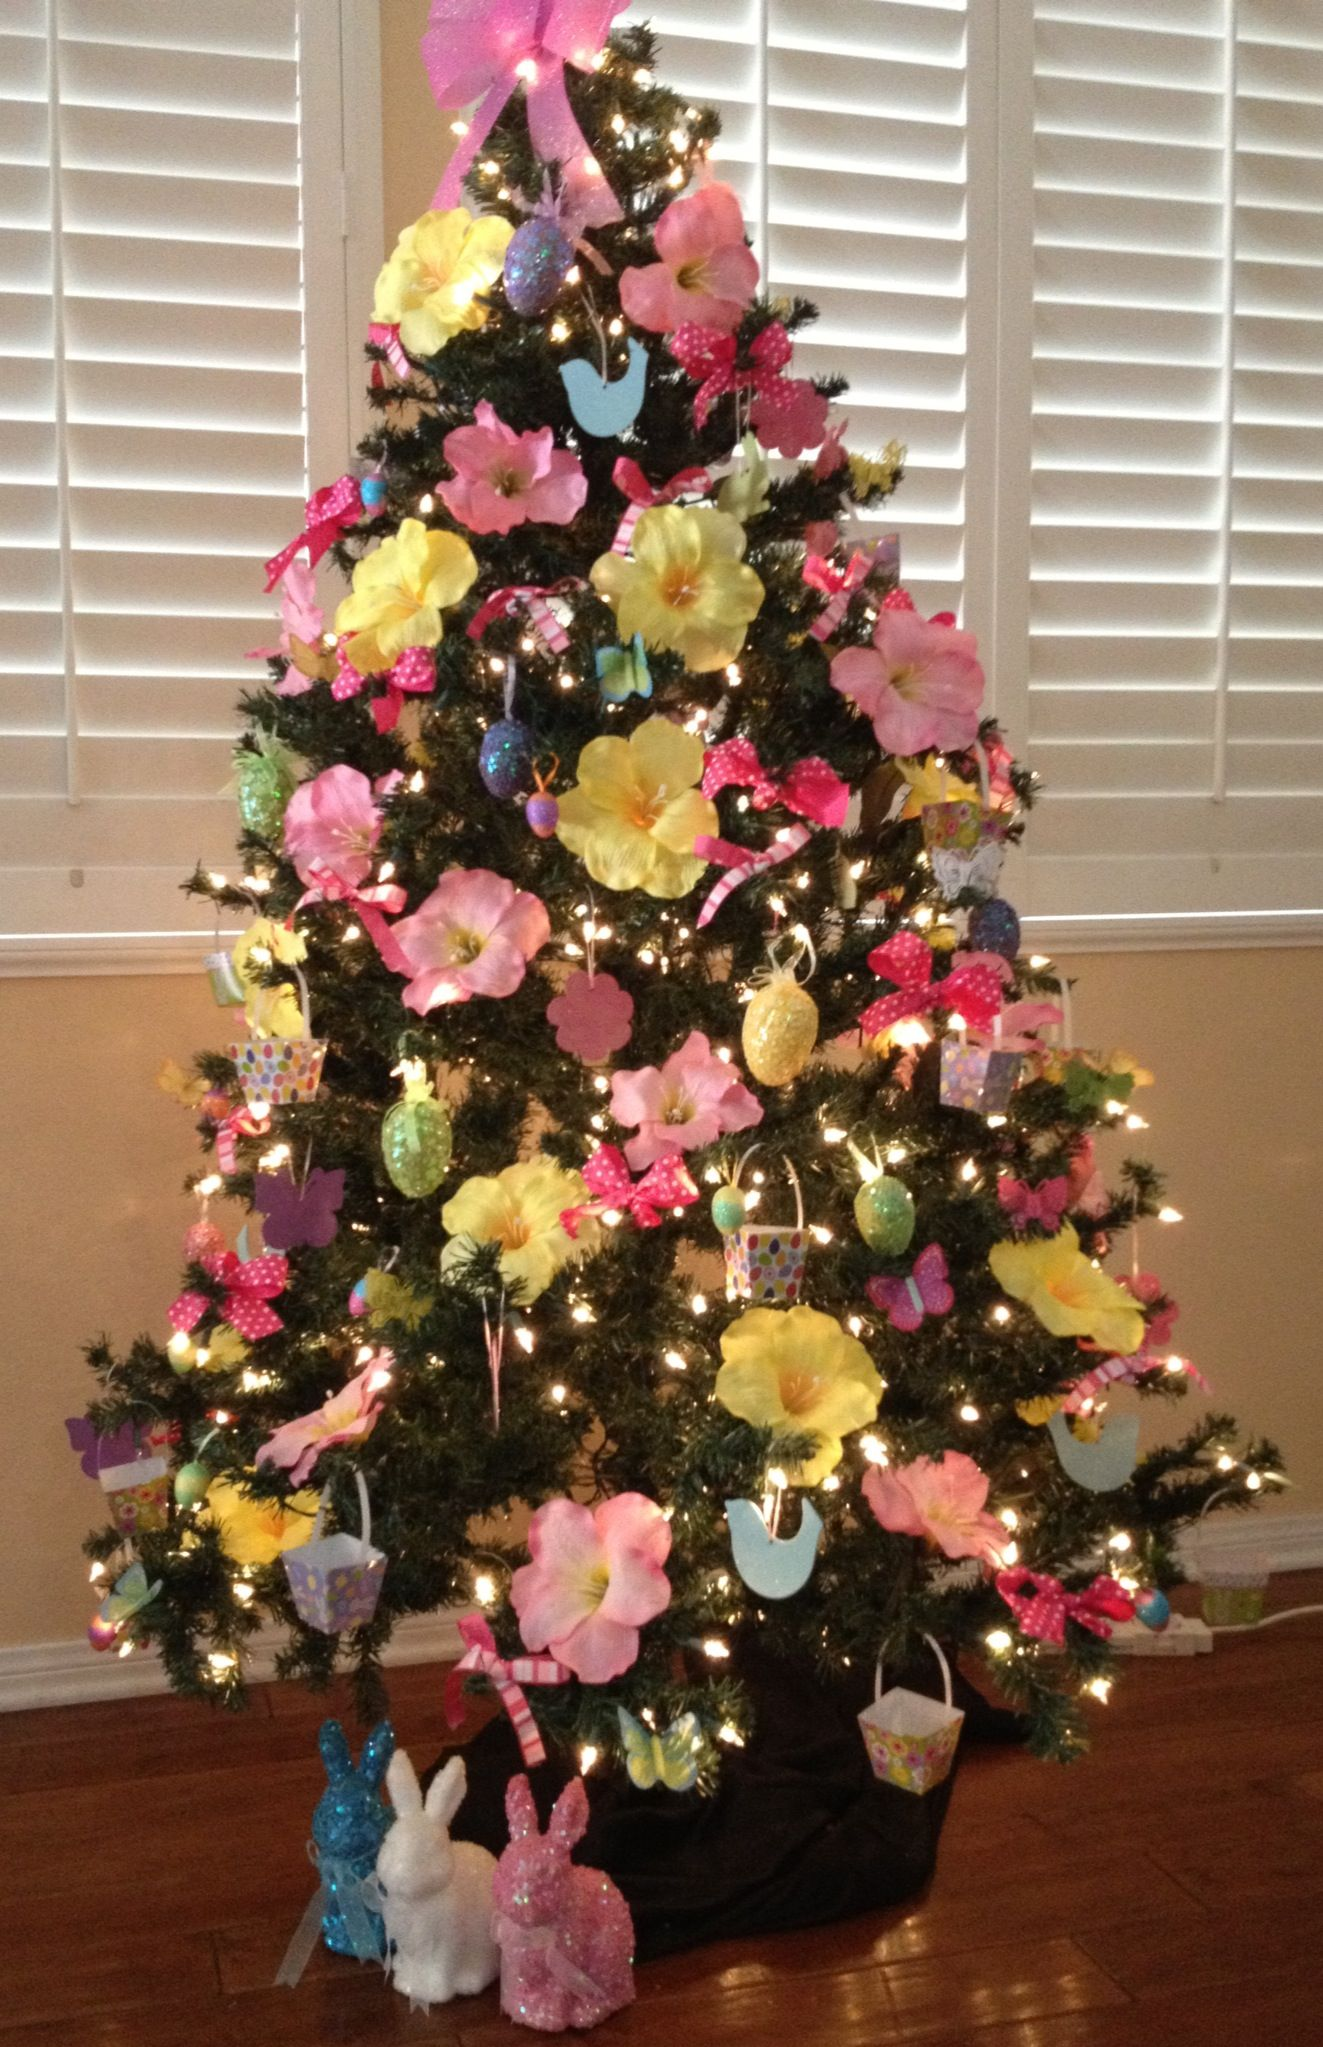 Just The Flowers Not Necessarily The Colors Spring Tree Decorations Easter Tree Ornaments Holiday Tree Decorations